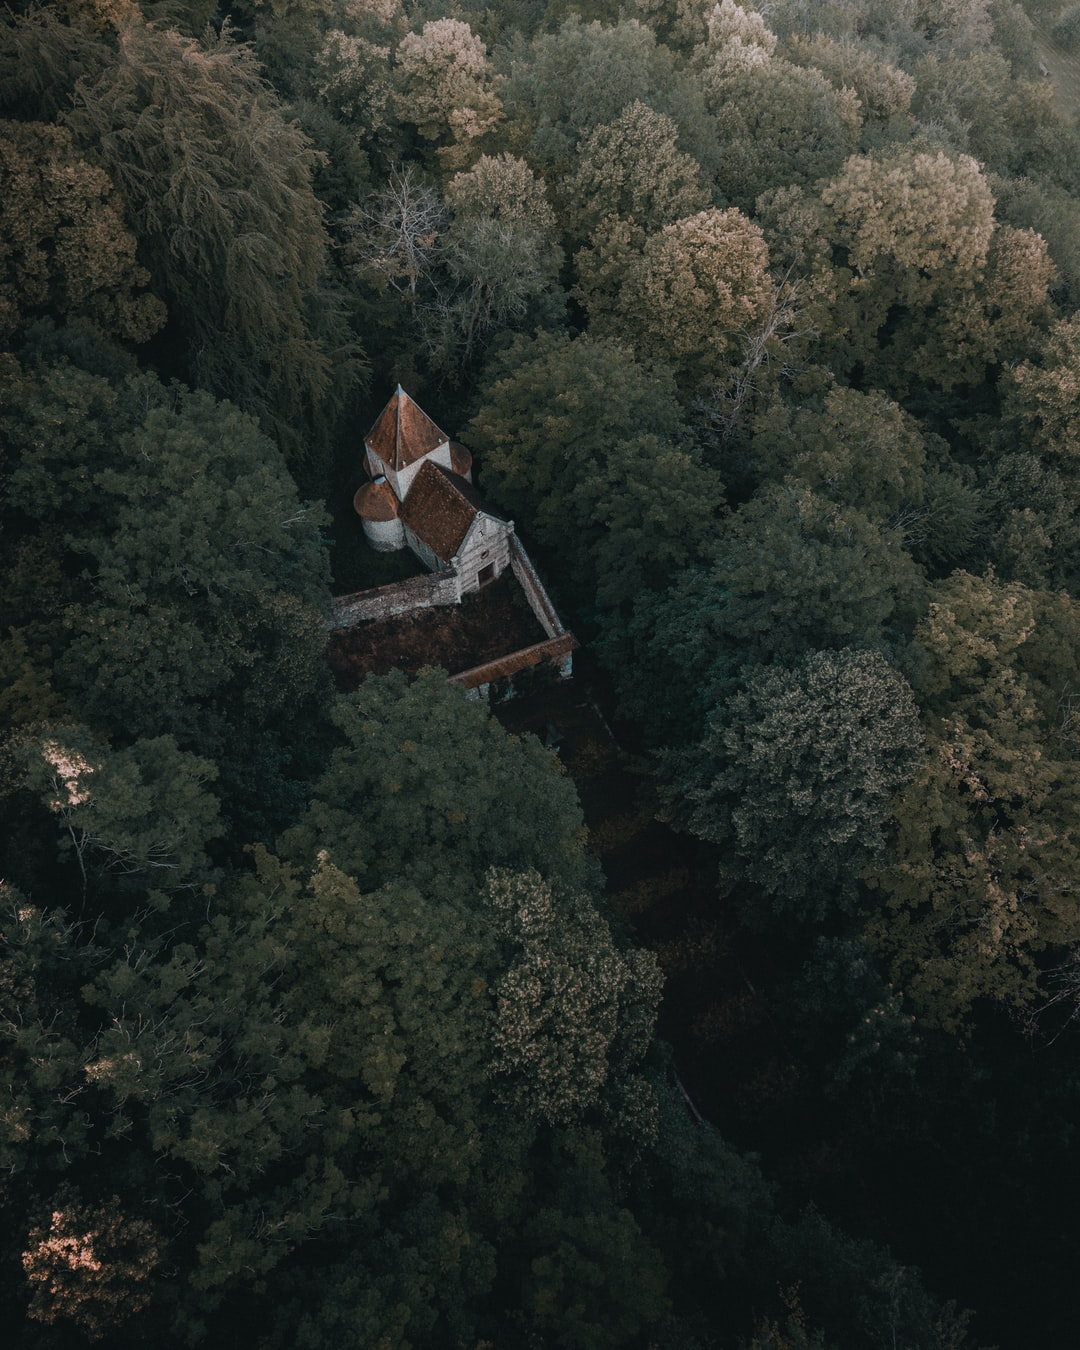 While flying my drone, saw this little church in the middle of the forest.